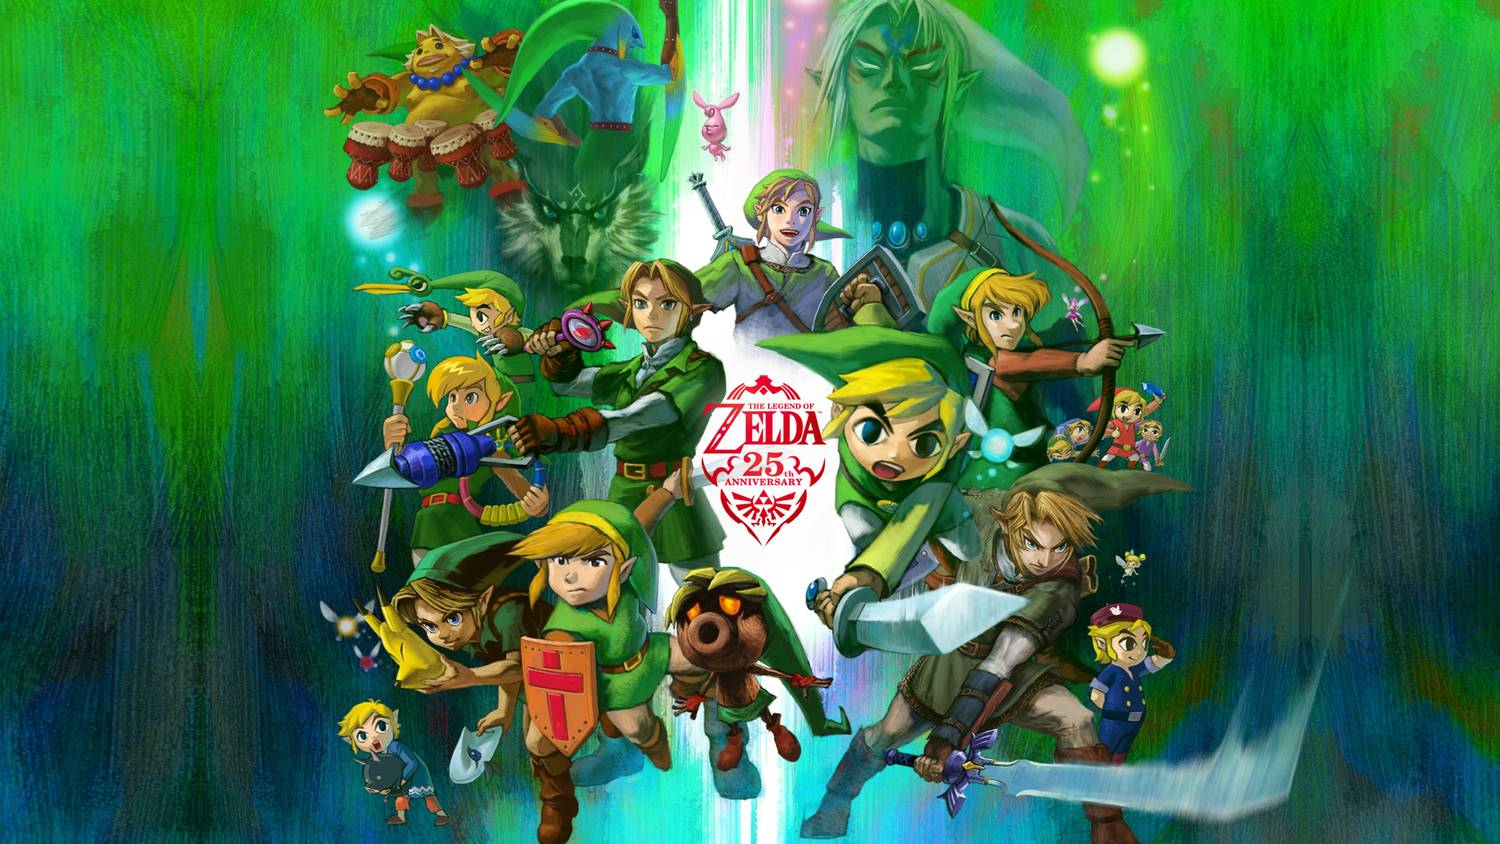 50 Legend Of Zelda Wallpapers 4k Hd 2020 Www Movierulz In 2020